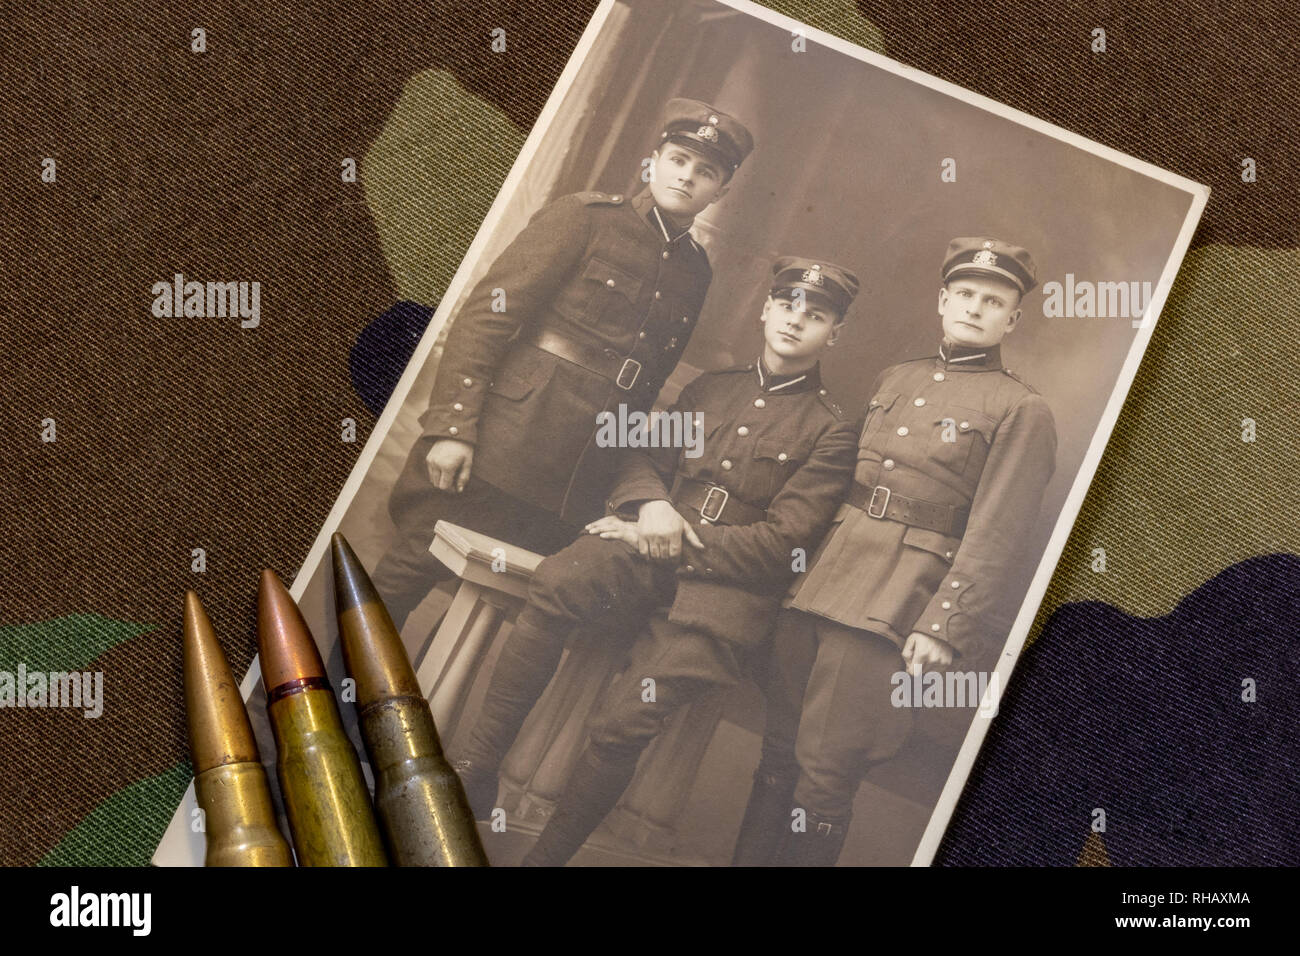 Postcard of three Latvian soldiers in period around 1935 and rifle bullets on trench coat - Stock Image